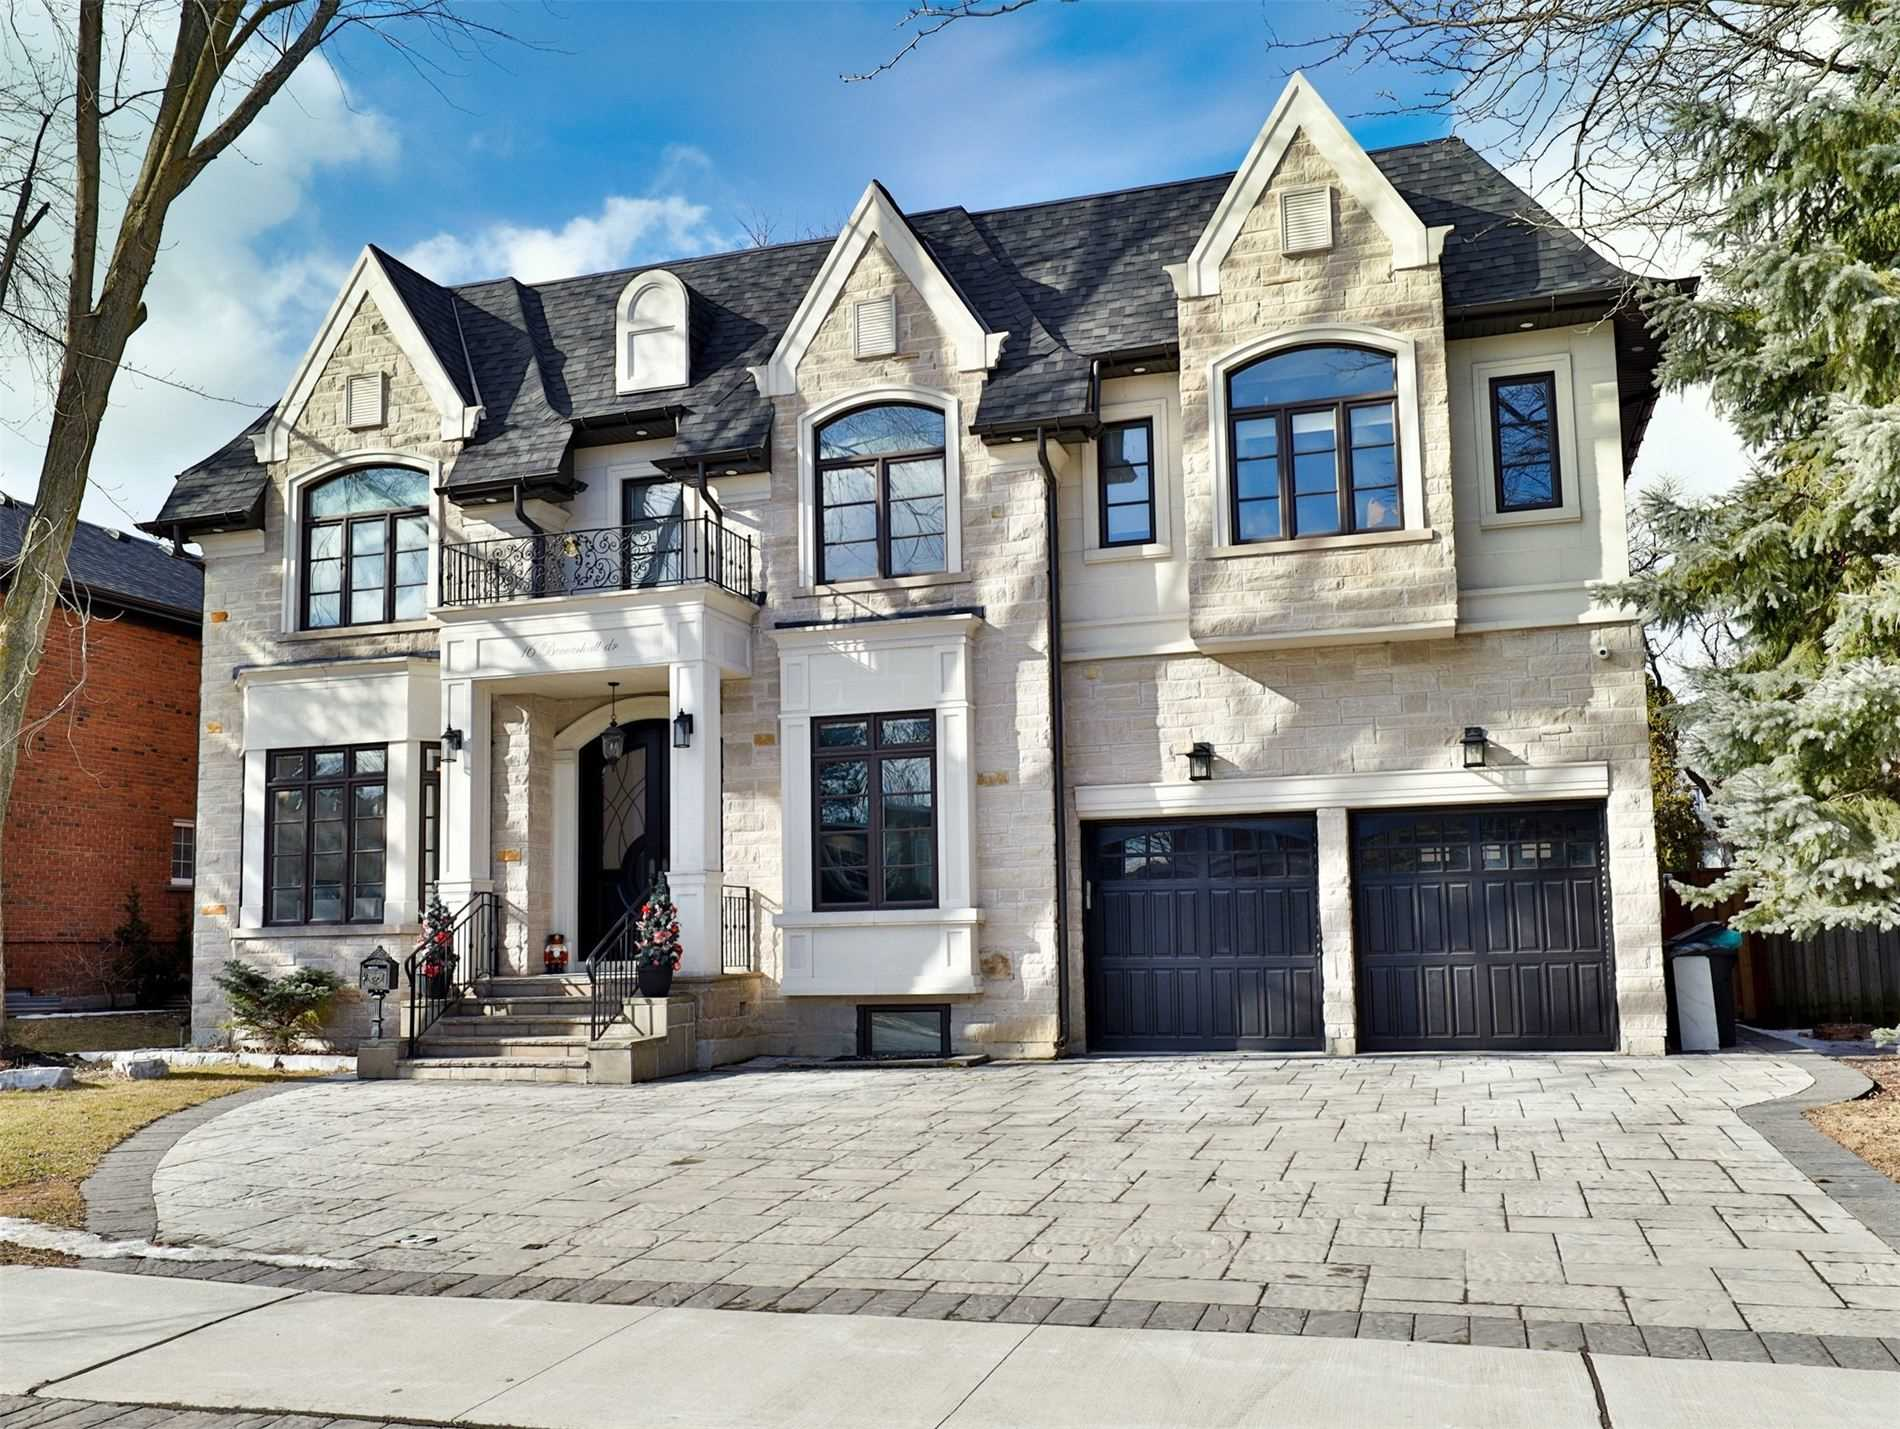 16 Beaverhall Dr, Toronto, Ontario M2L2C7, 5 Bedrooms Bedrooms, 11 Rooms Rooms,7 BathroomsBathrooms,Detached,For Sale,Beaverhall,C5136725